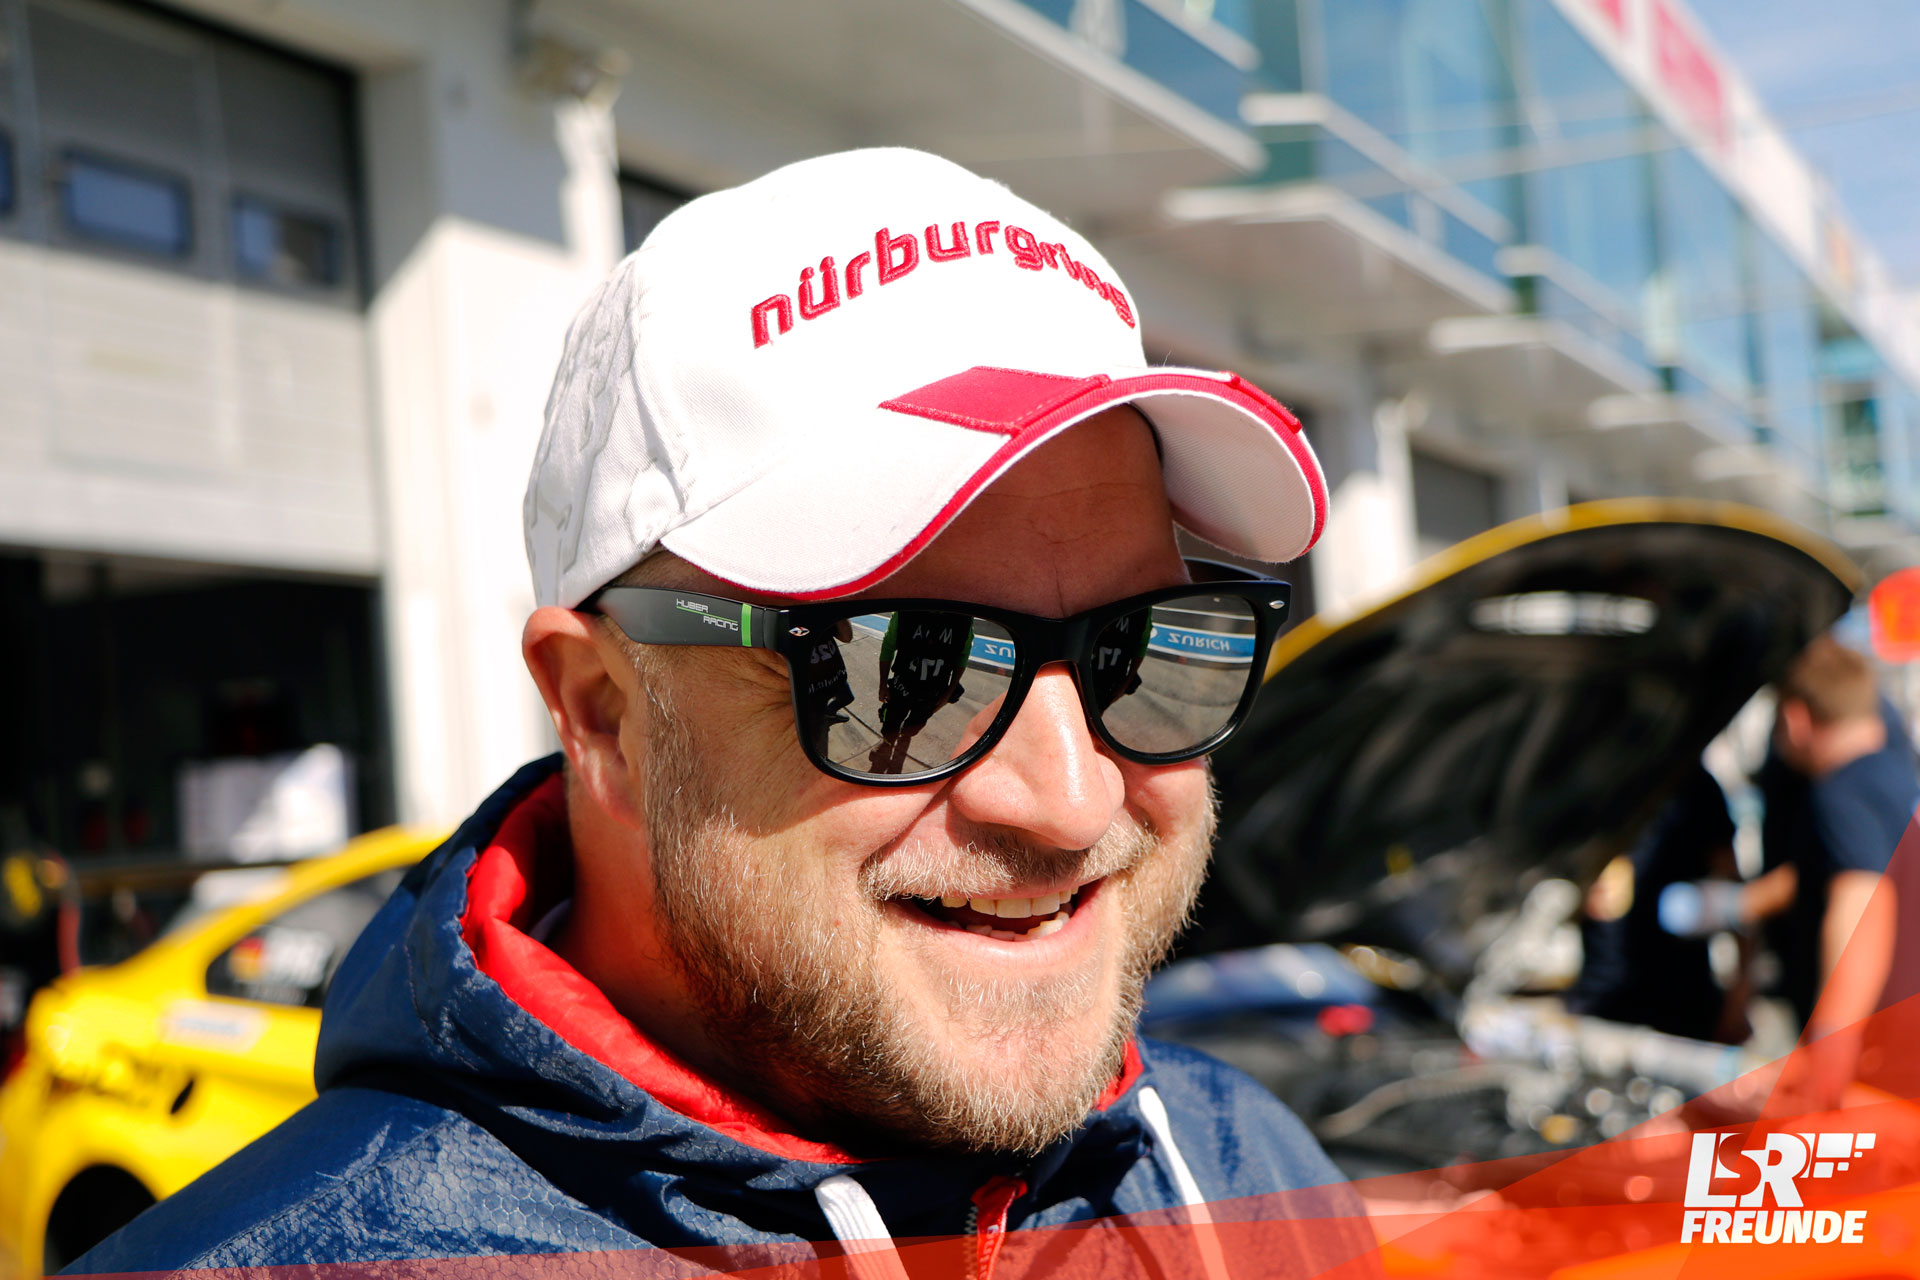 Andy Gülden, Nürburgring, Mathilda Racing, Driving Academy